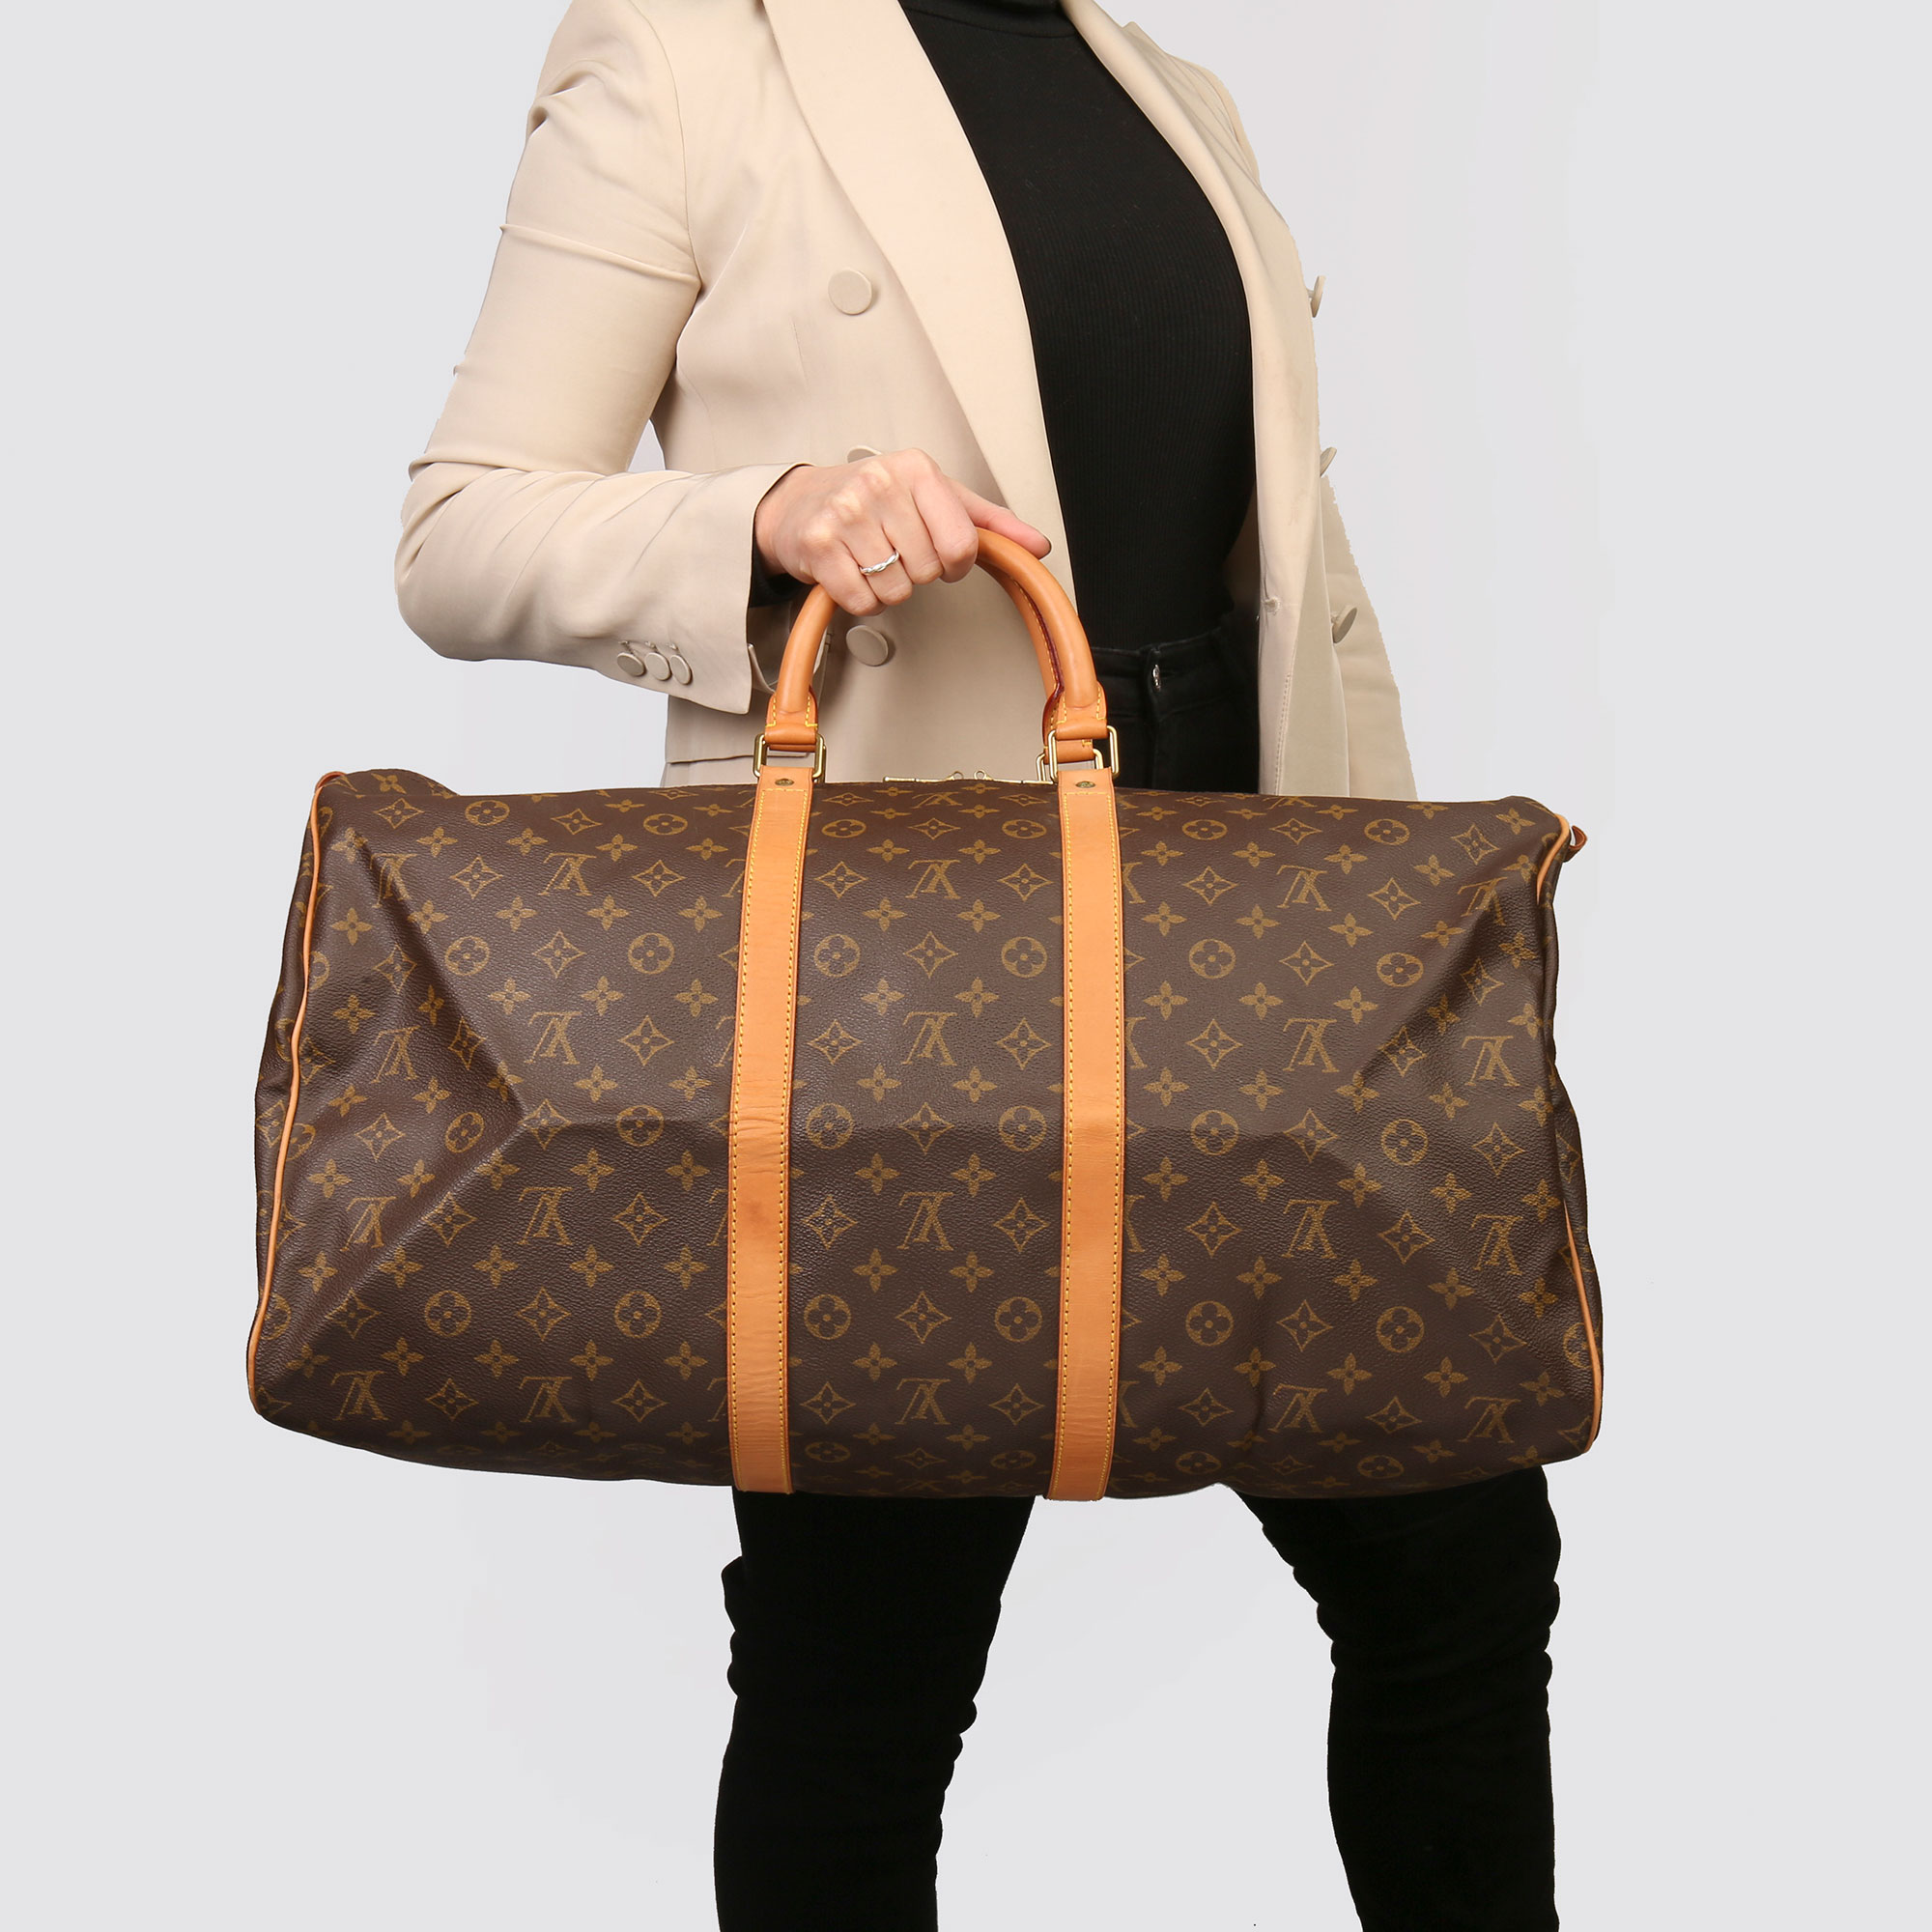 Louis Vuitton Brown Monogram Coated Canvas & Vachetta Leather Vintage Keepall 55 - Image 2 of 14